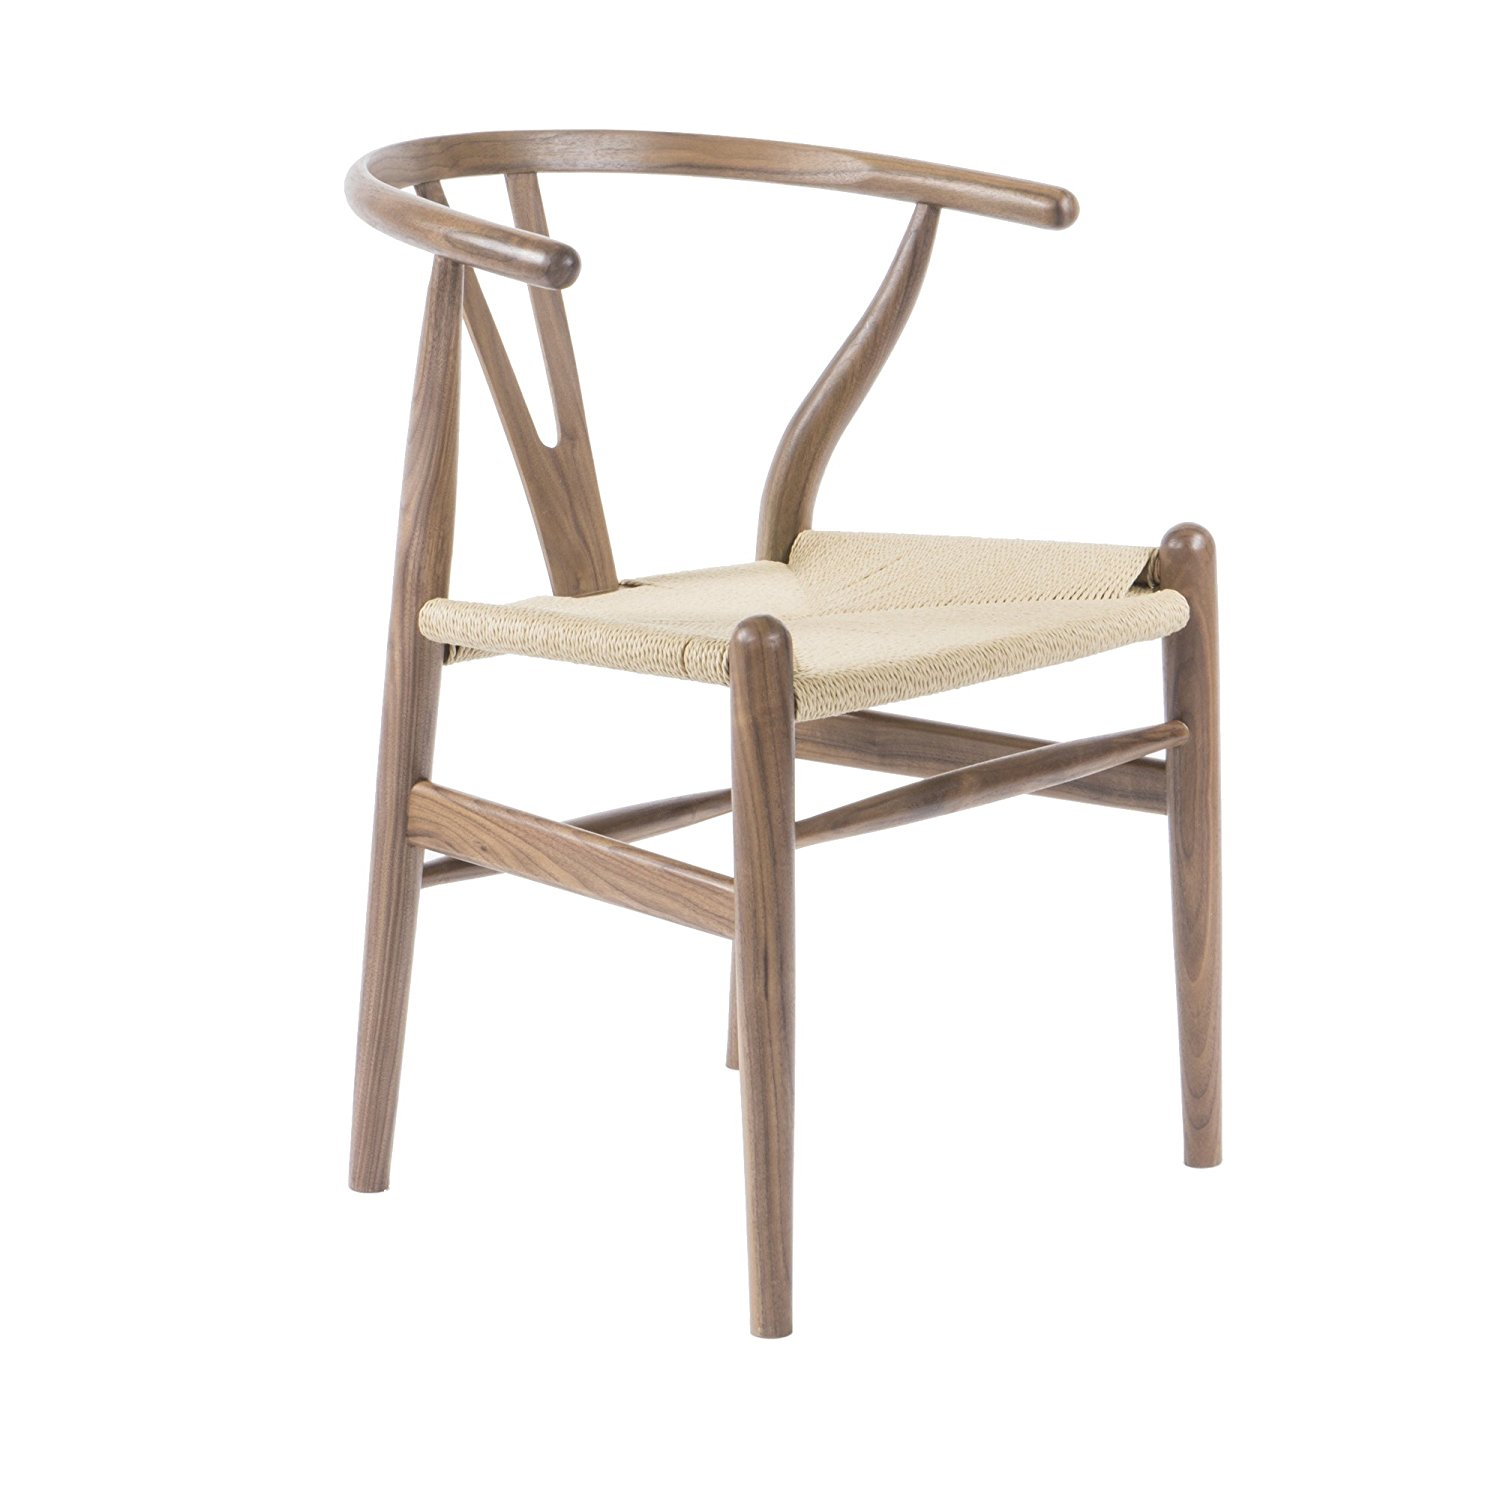 cheap ch24 wishbone chair find ch24 wishbone chair deals on line at